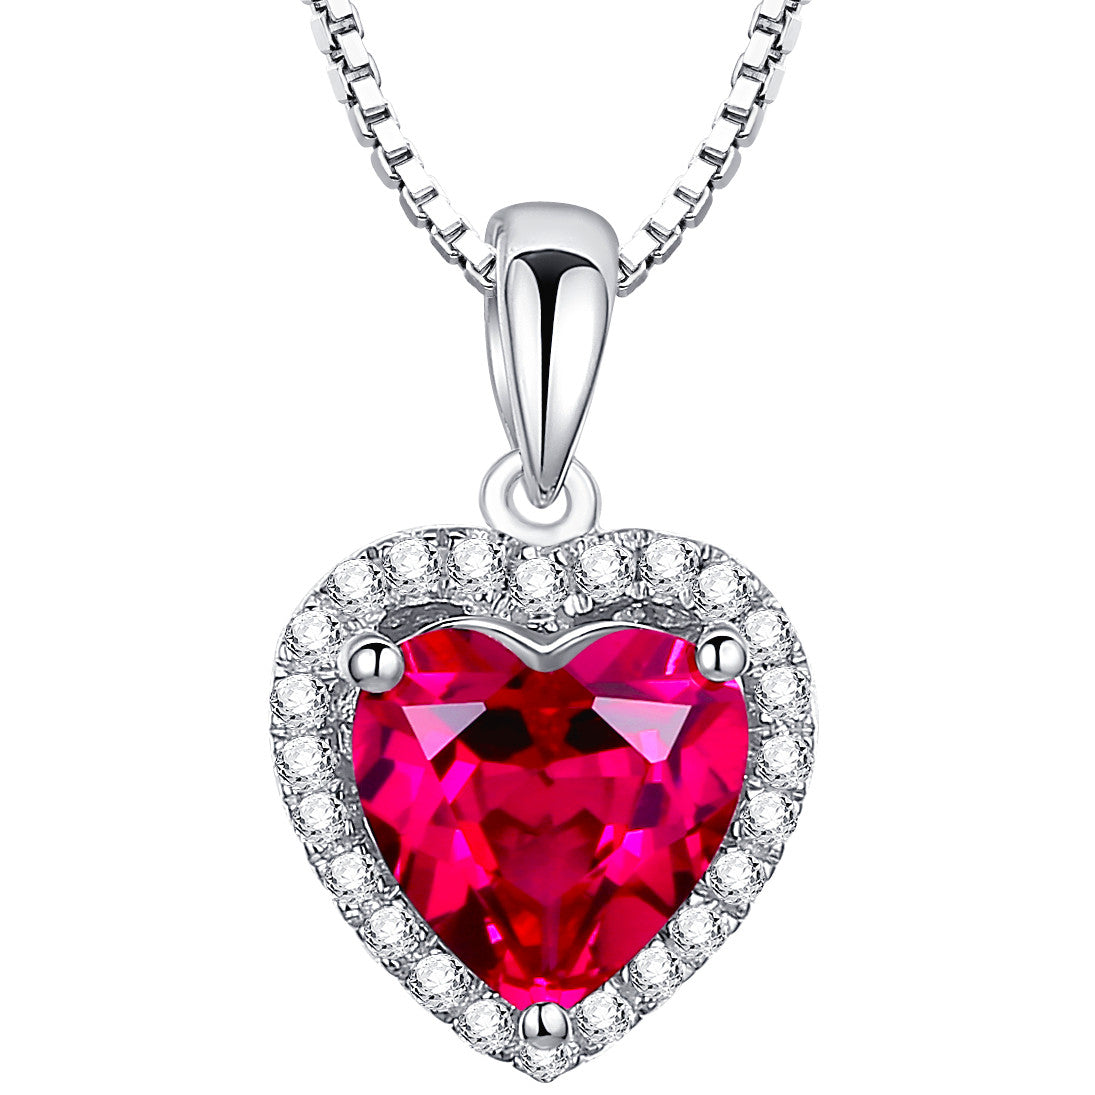 Sterling silver valentine heart 4ct ruby pendant necklace arco sterling silver valentine heart 4ct ruby pendant necklace aloadofball Choice Image